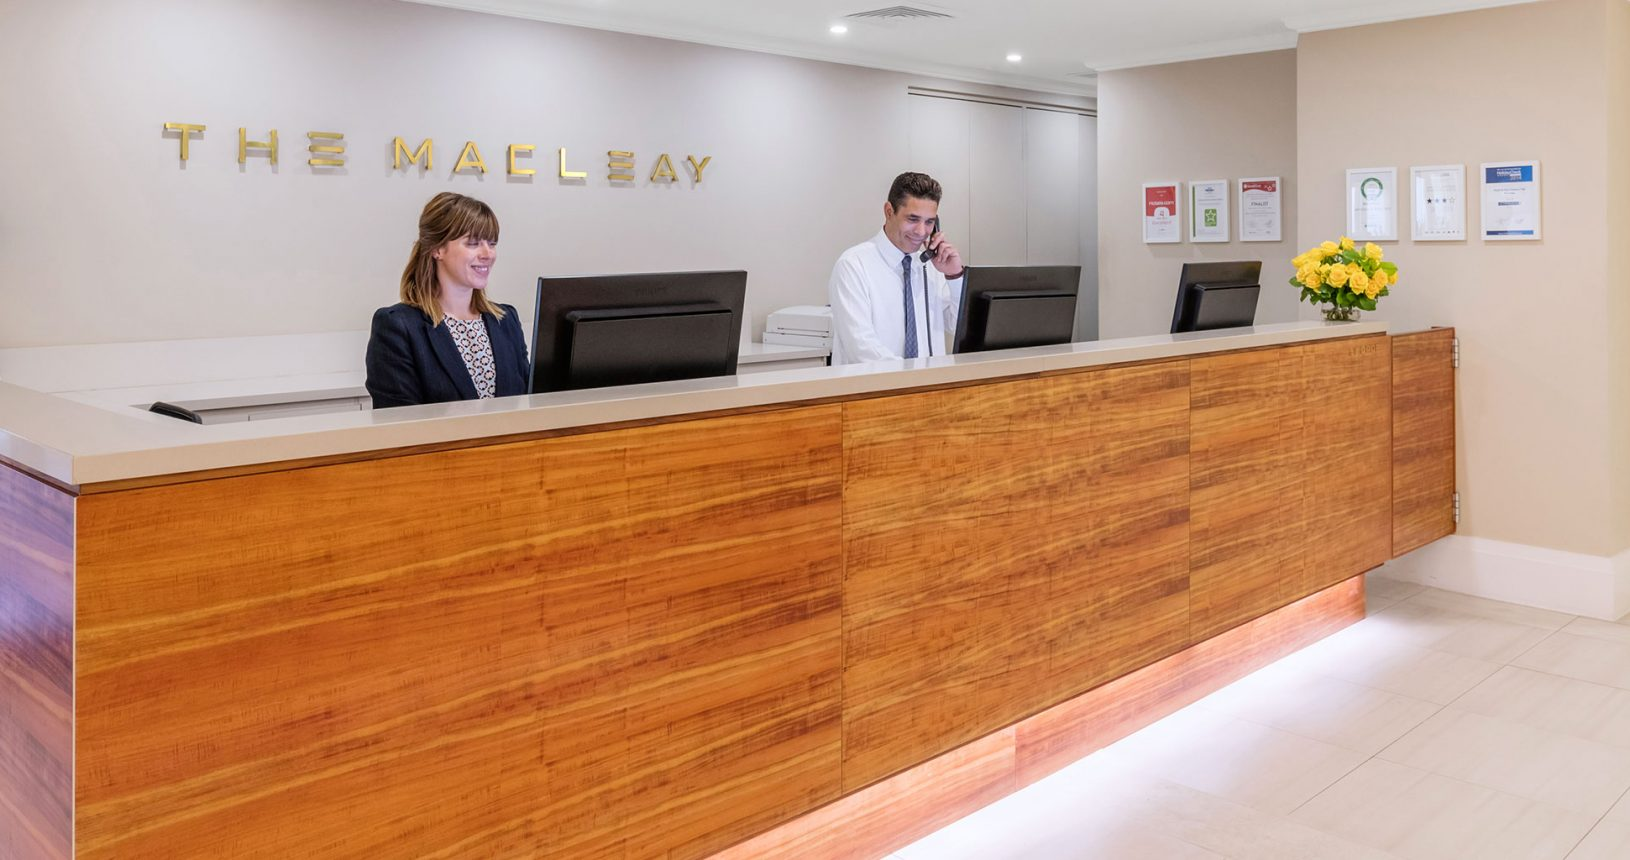 The Macleay Hotel Reception on Macleay street